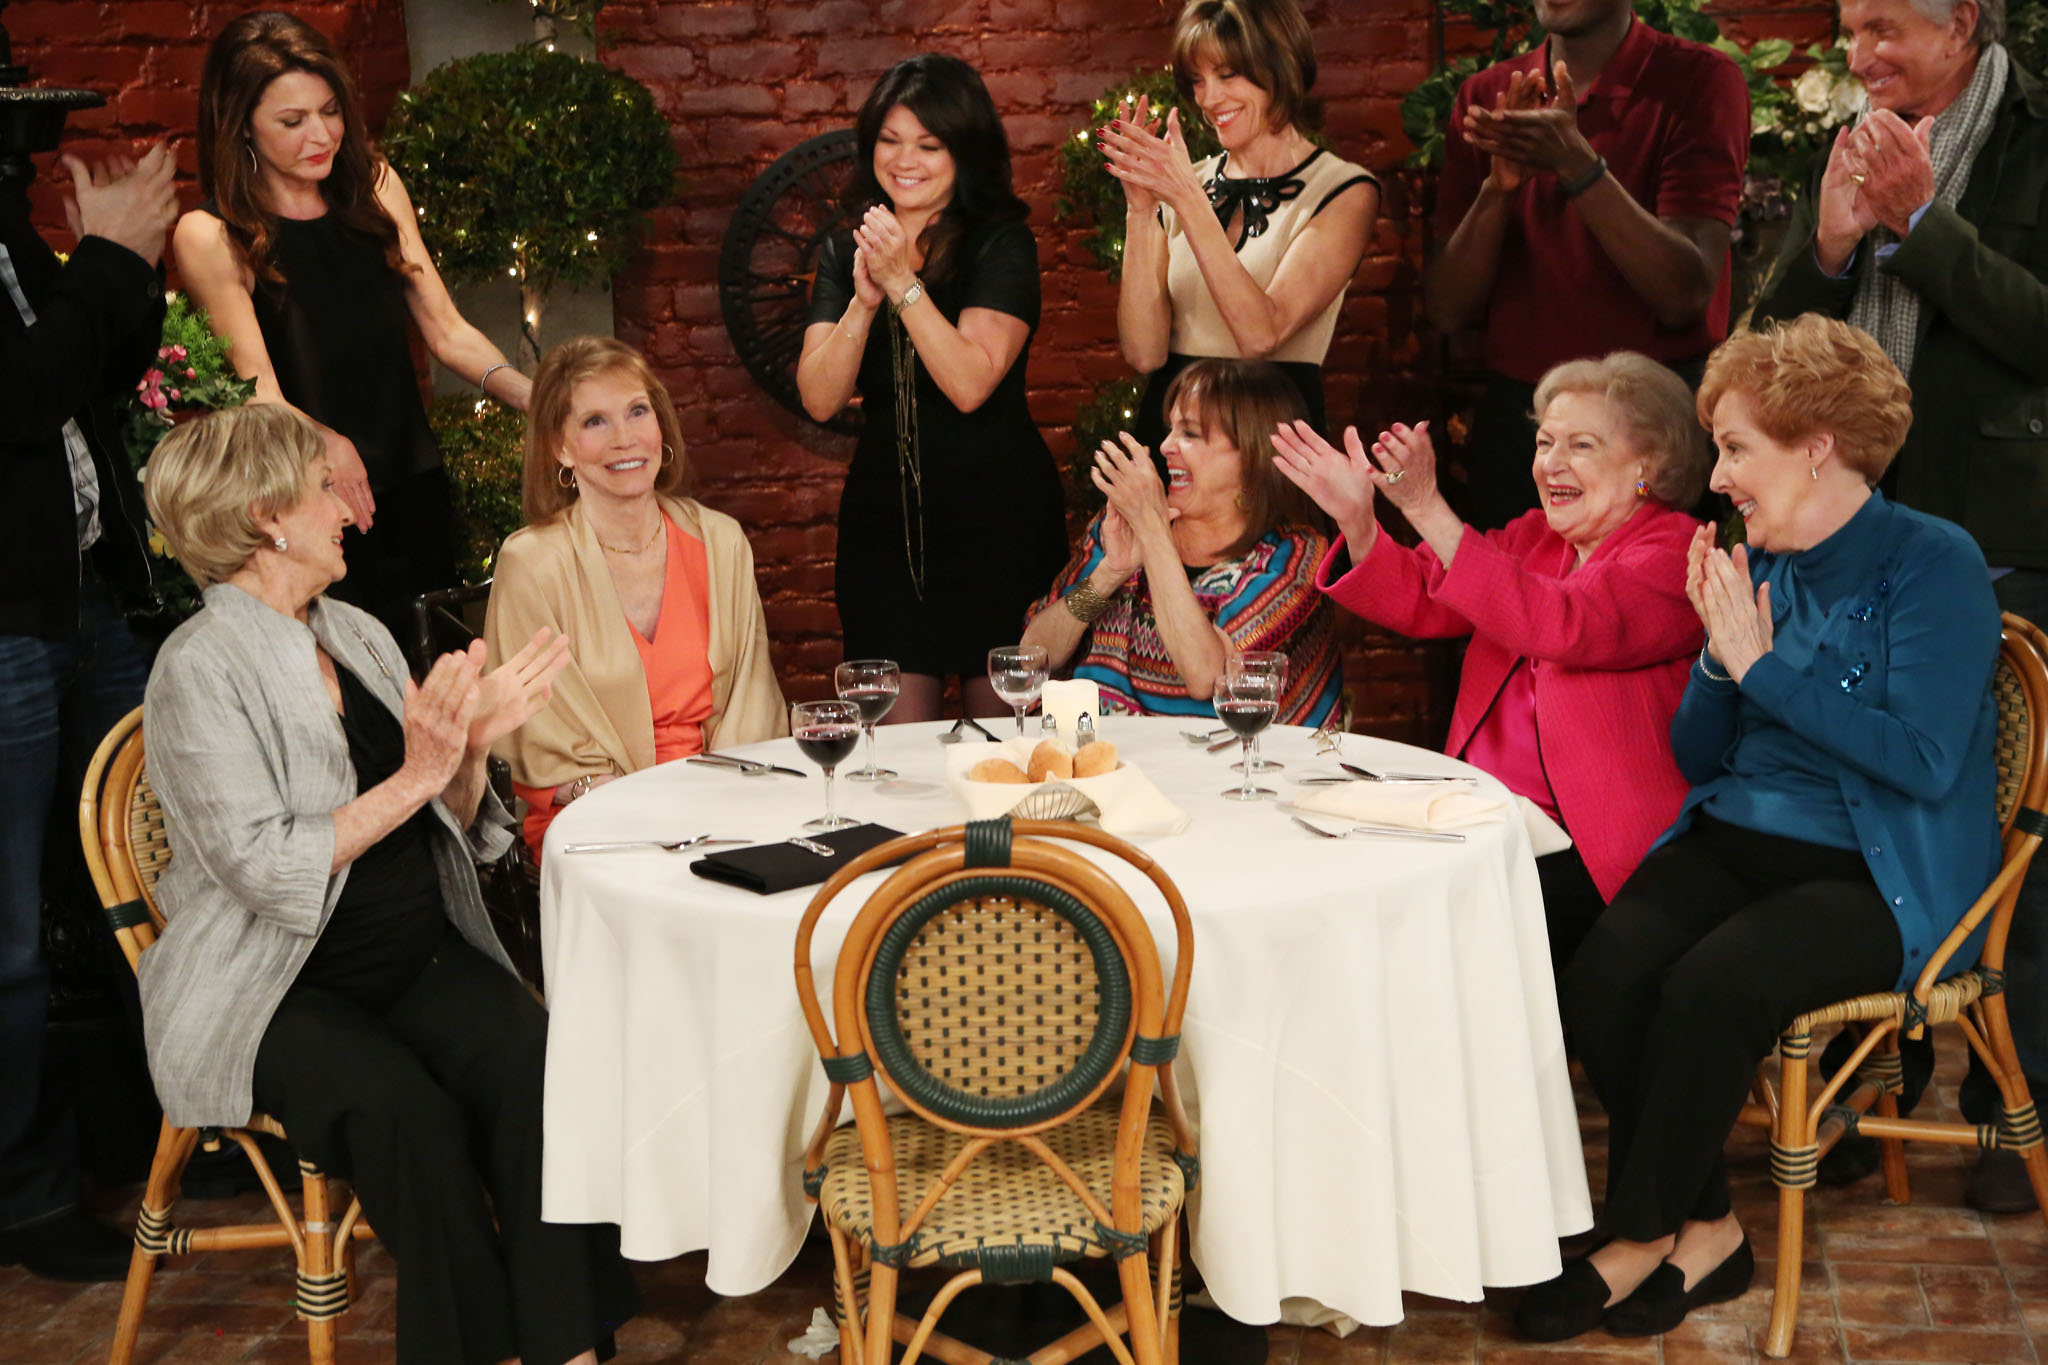 'Hot in Cleveland': 7 'Mary Tyler Moore Show' Reunion Moments That Walked Down Memory Lane